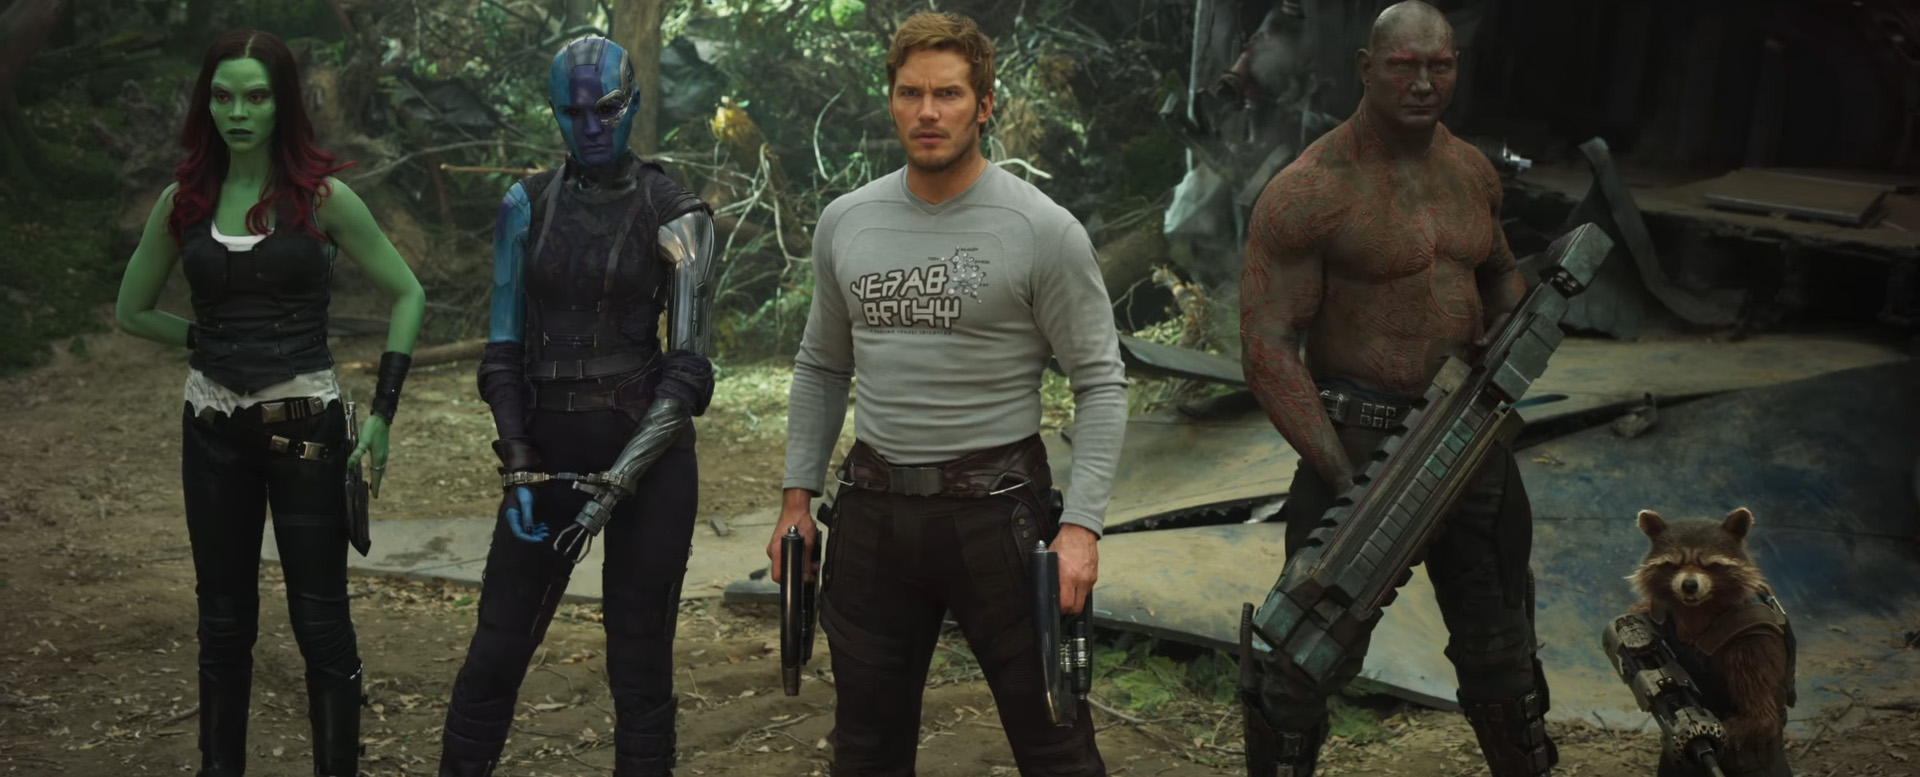 Guardians of the Galaxy Vol. 2. Image Credit: Marvel/Disney.